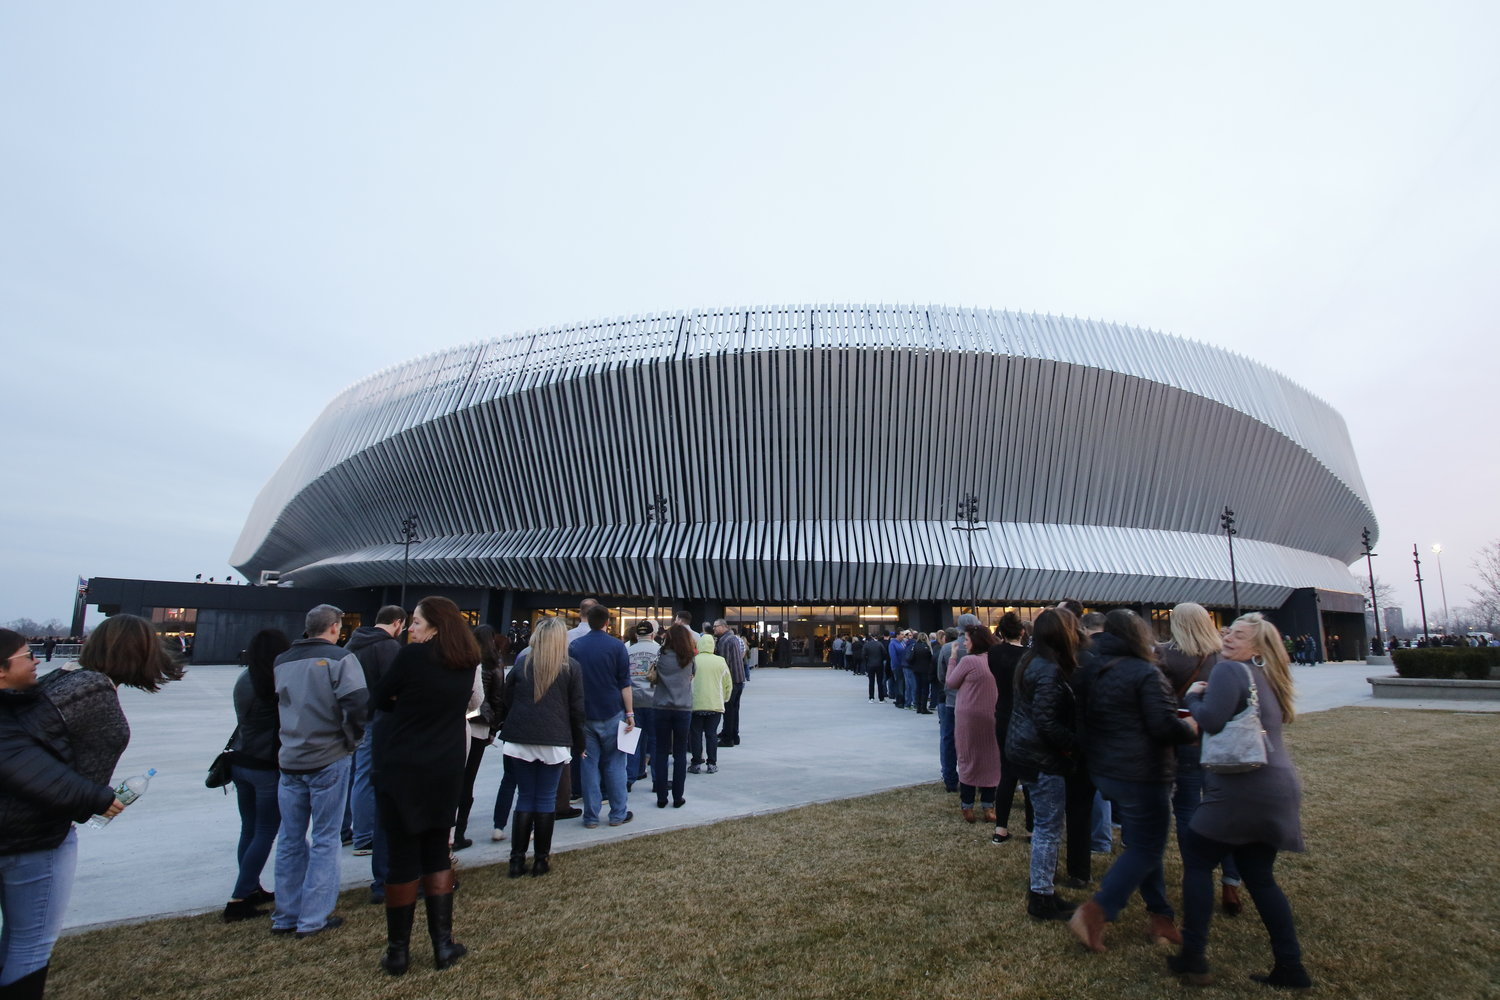 Nassau Coliseum is expected to see a spike in concert activity in late 2021 and early 2022, according to a report from the Nassau County Industrial Development Agency.